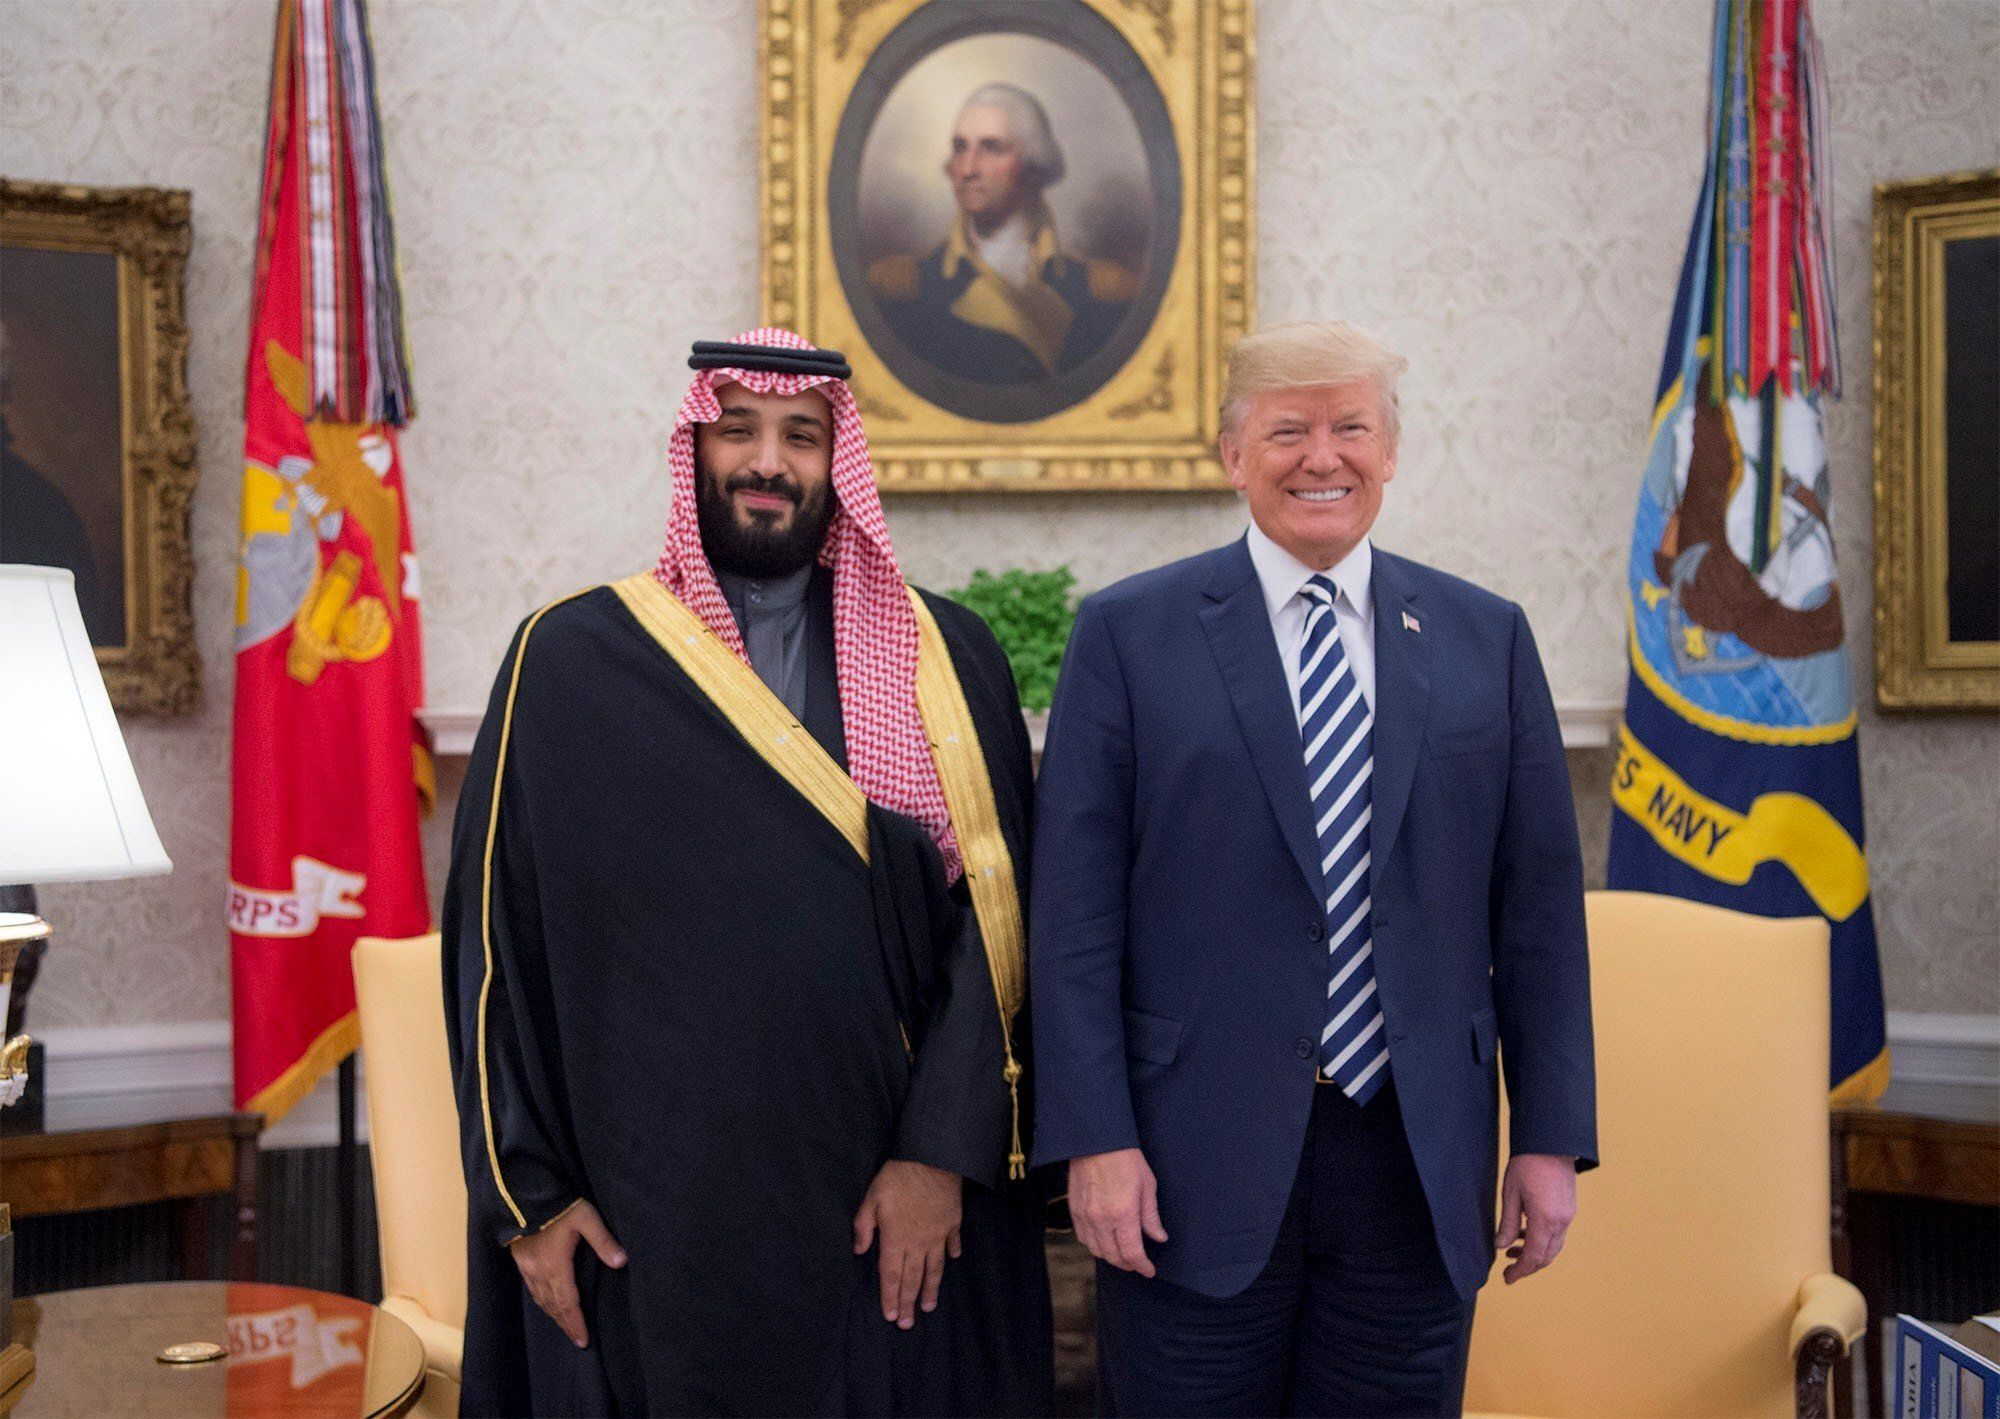 WASHINGTON, USA - MARCH 20: (----EDITORIAL USE ONLY  MANDATORY CREDIT - 'BANDAR ALGALOUD / SAUDI KINGDOM COUNCIL / HANDOUT' - NO MARKETING NO ADVERTISING CAMPAIGNS - DISTRIBUTED AS A SERVICE TO CLIENTS----) U.S. President Donald Trump (R) poses for a photo with Crown Prince Mohammed bin Salman Al Saud (L) of Saudi Arabia in the Oval Office at the White House on March 20, 2018 in Washington, United States. (Photo by Bandar Algaloud / Saudi Kingdom Council / Handout/Anadolu Agency/Getty Images)